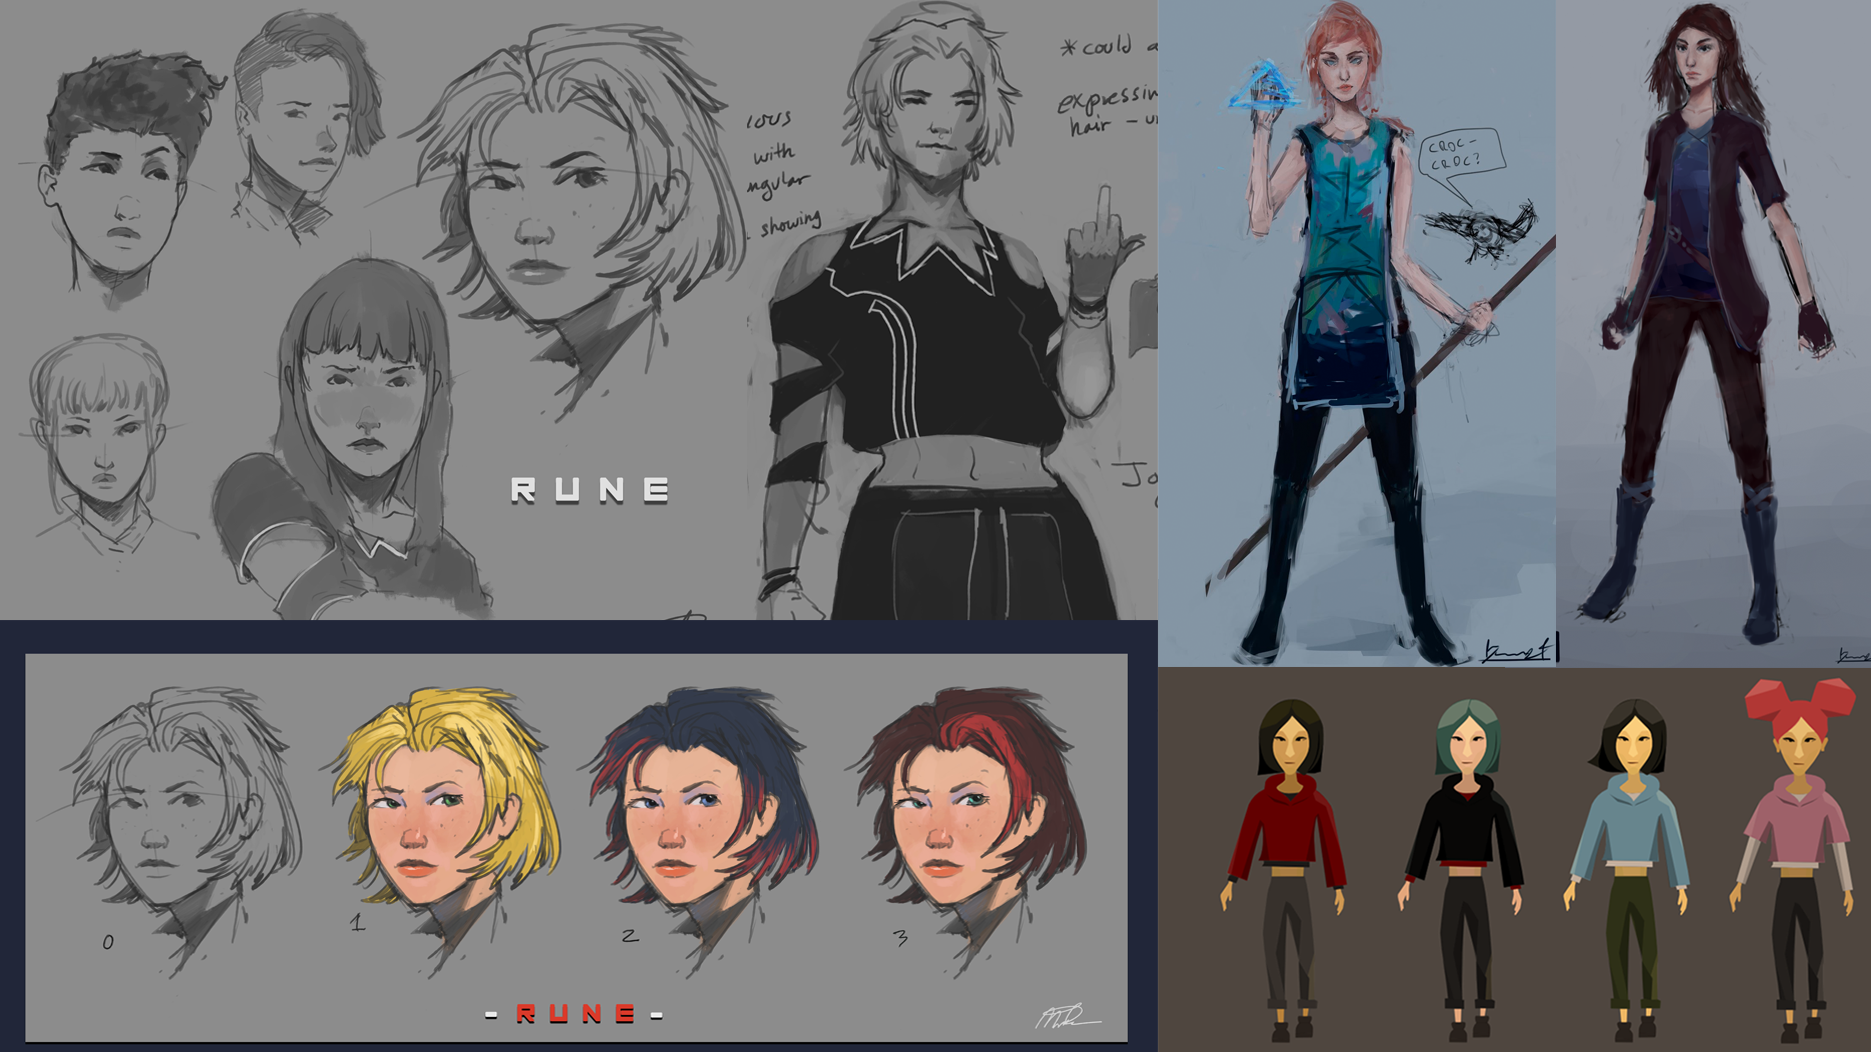 Concept art for our main character, Rune.